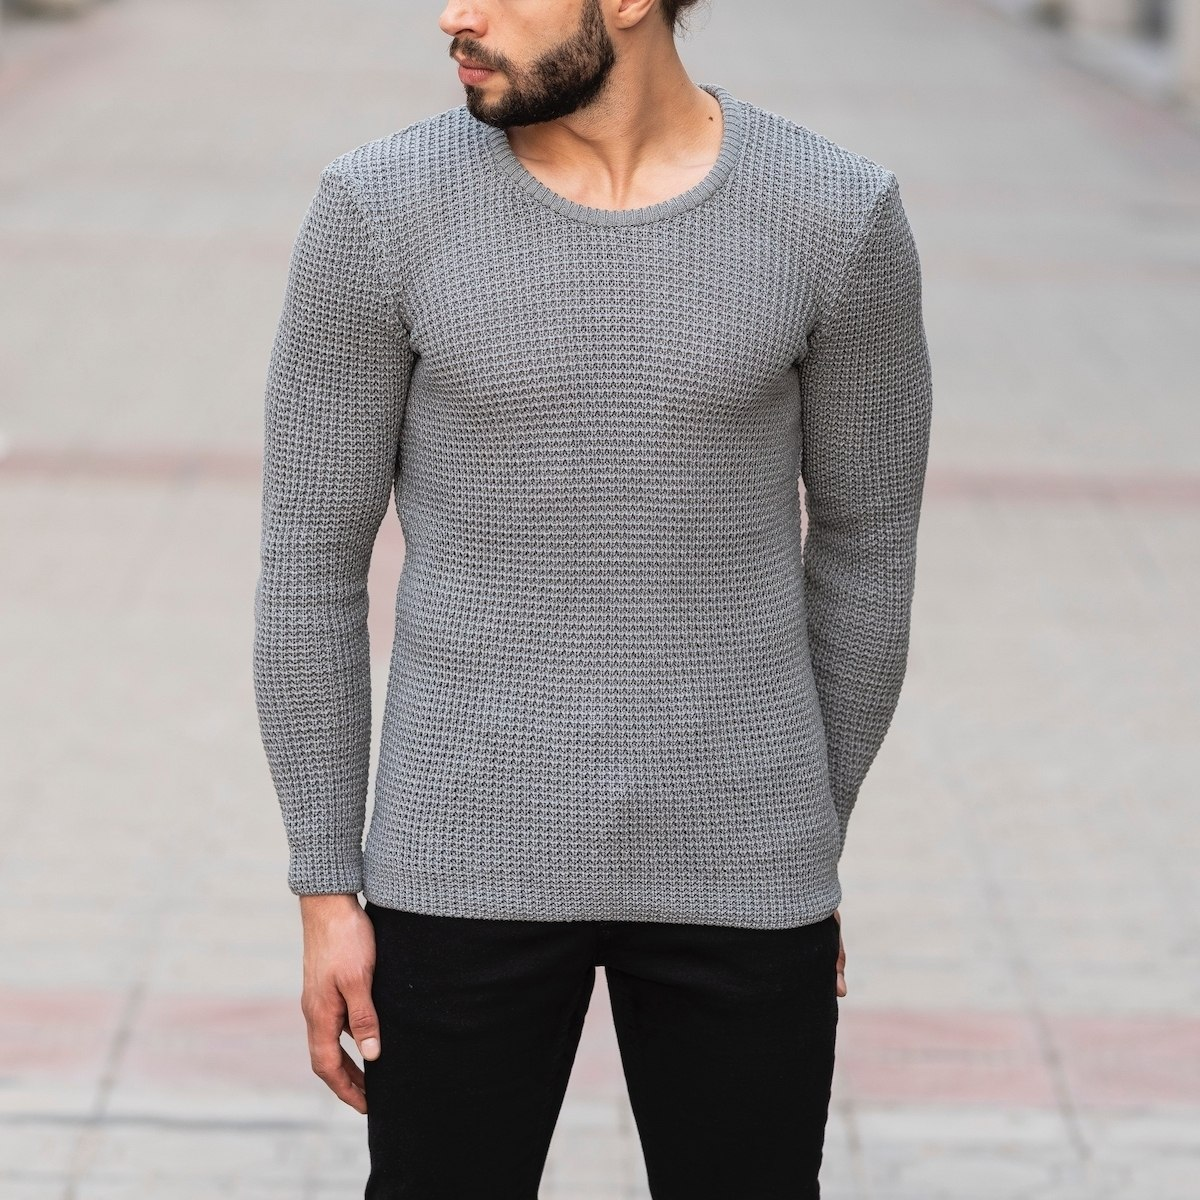 Knitted Pullover In Gray Mv Premium Brand - 1